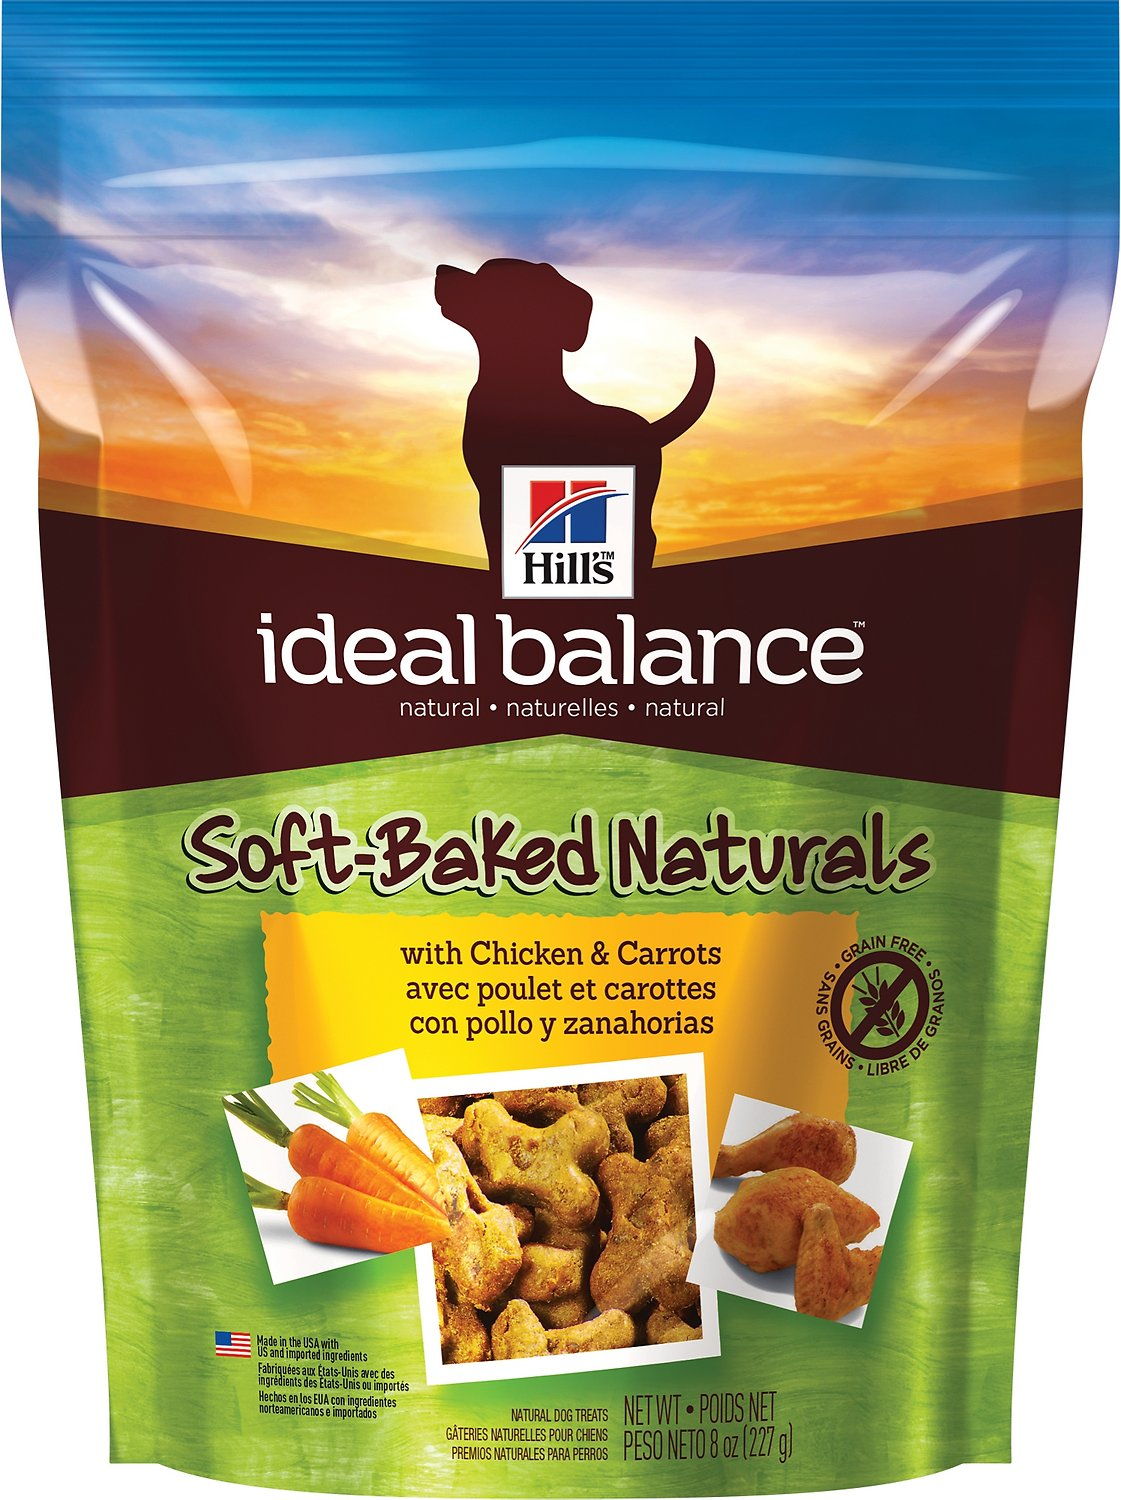 Hill's Ideal Balance Soft-Baked Naturals with Chicken & Carrots Dog Treats, 8-oz bag